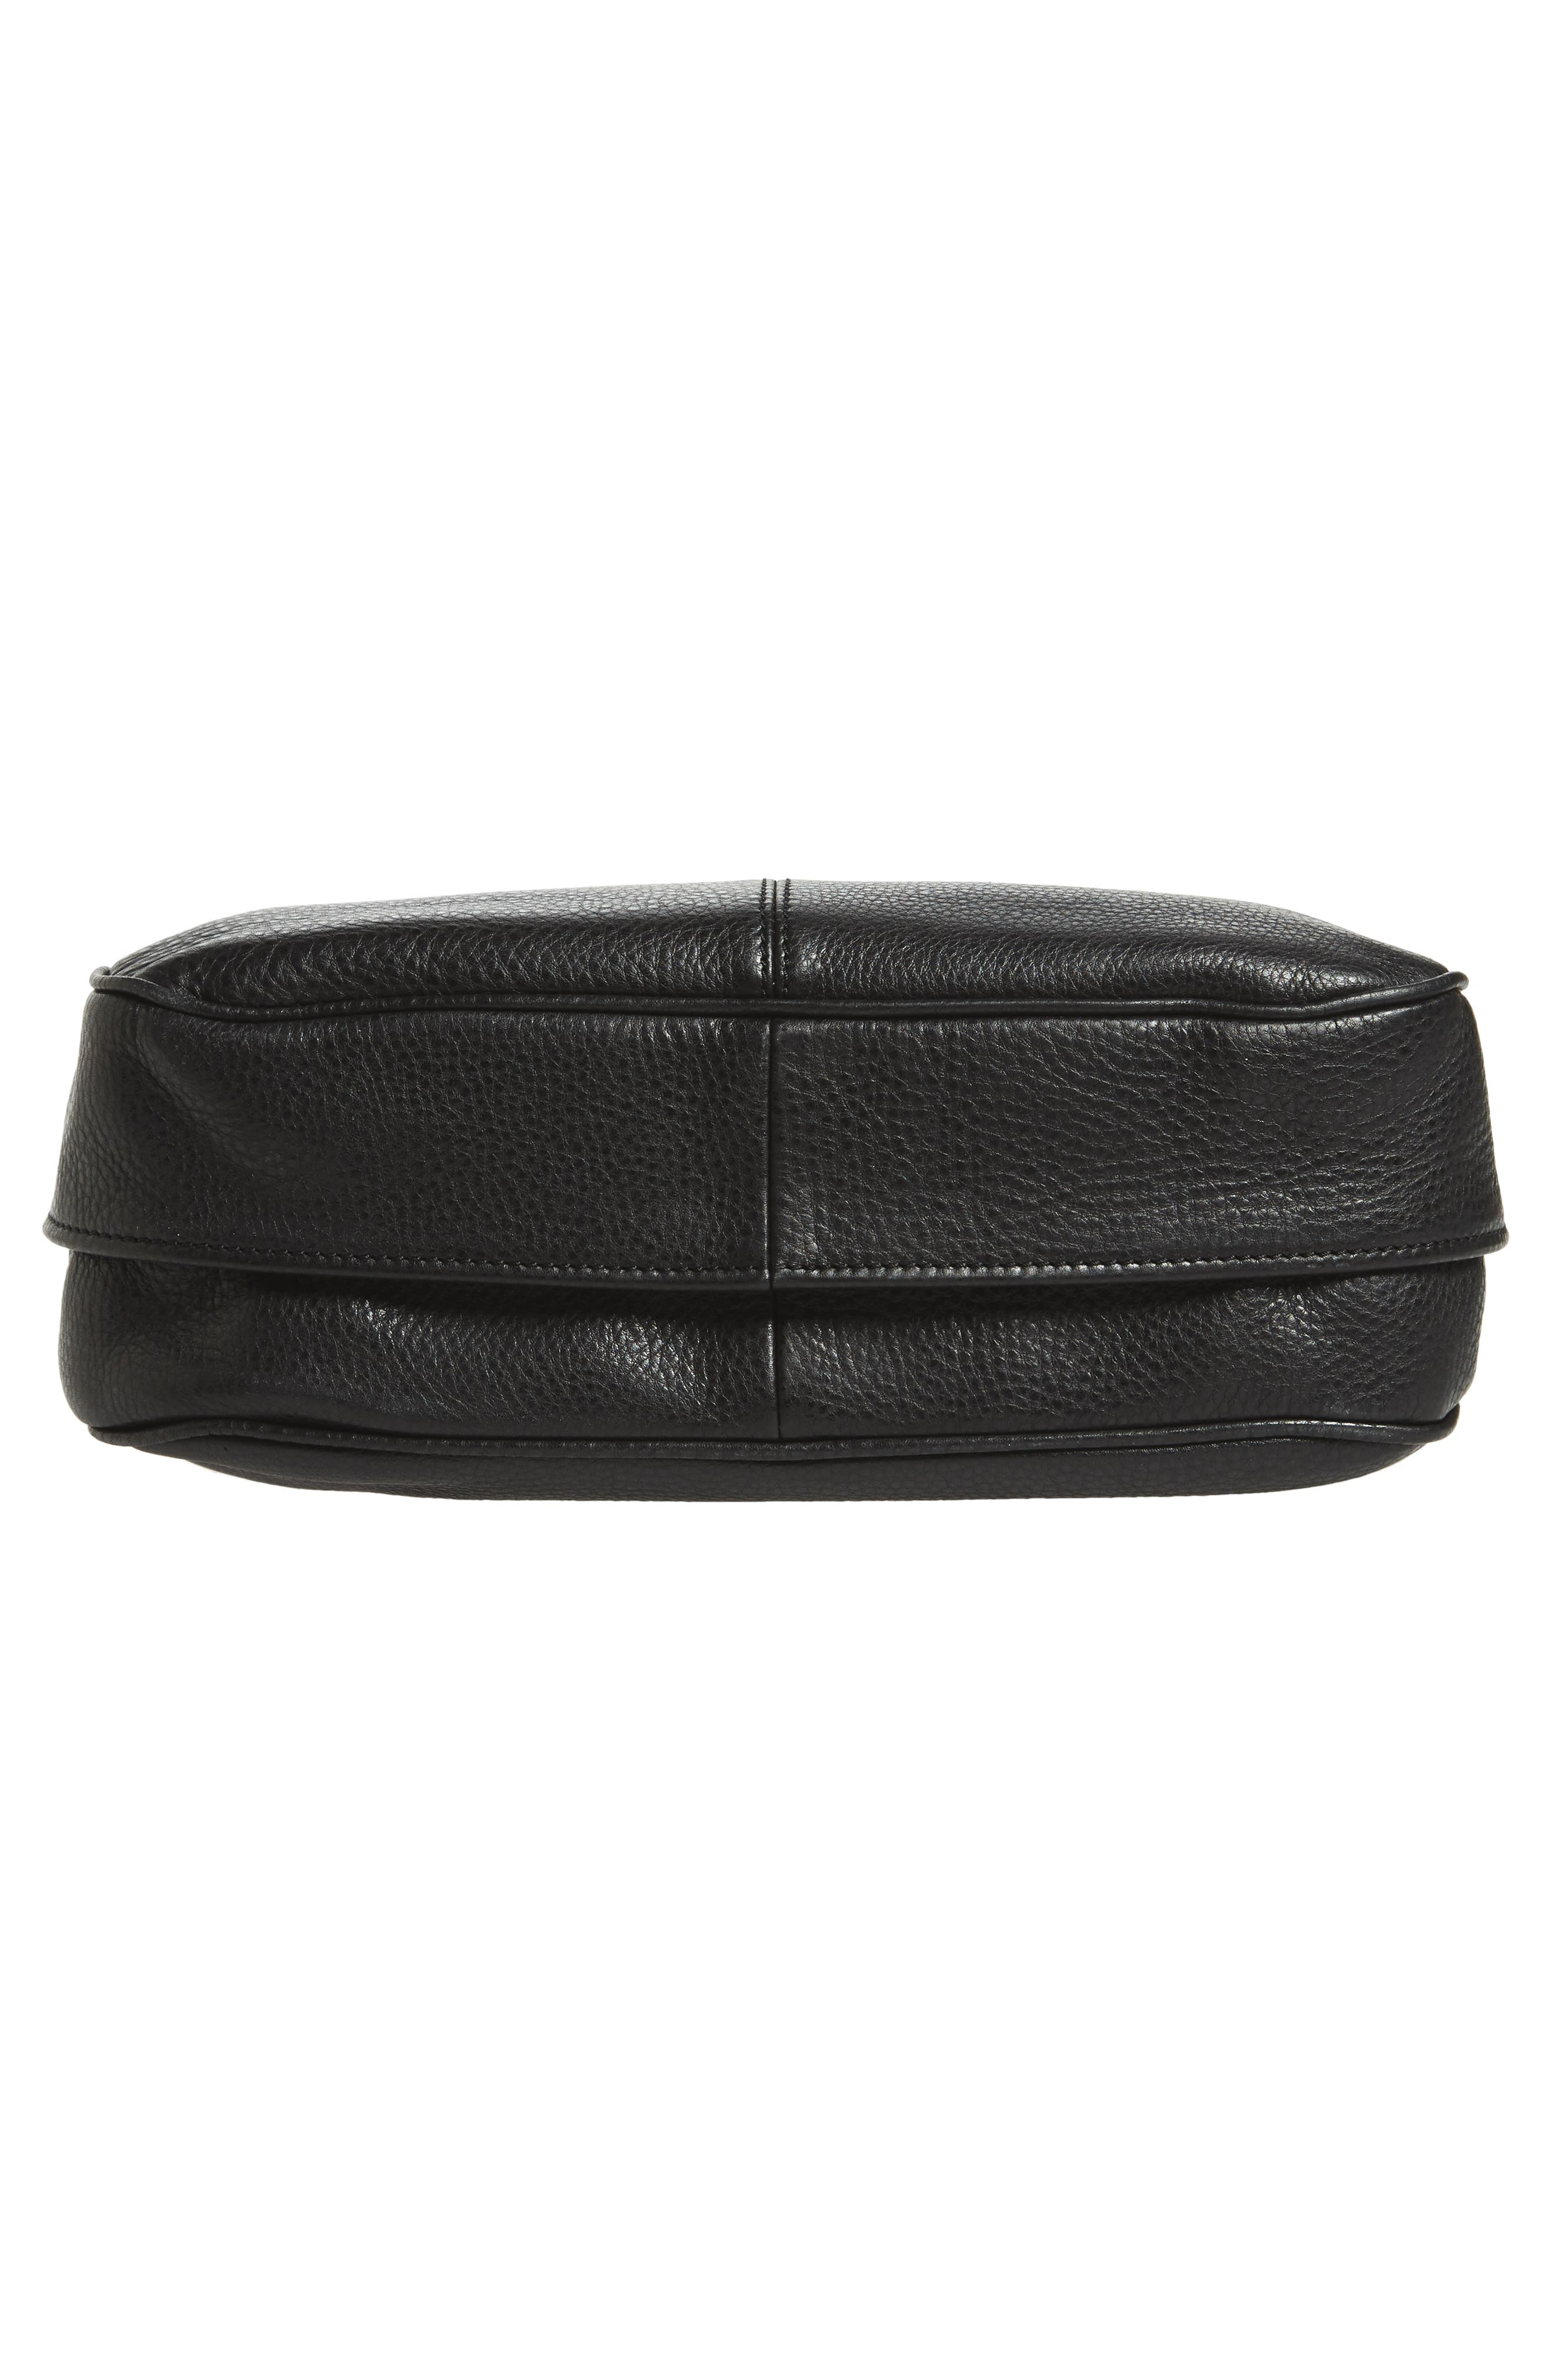 Mystery Leather Satchel,                             Alternate thumbnail 6, color,                             001